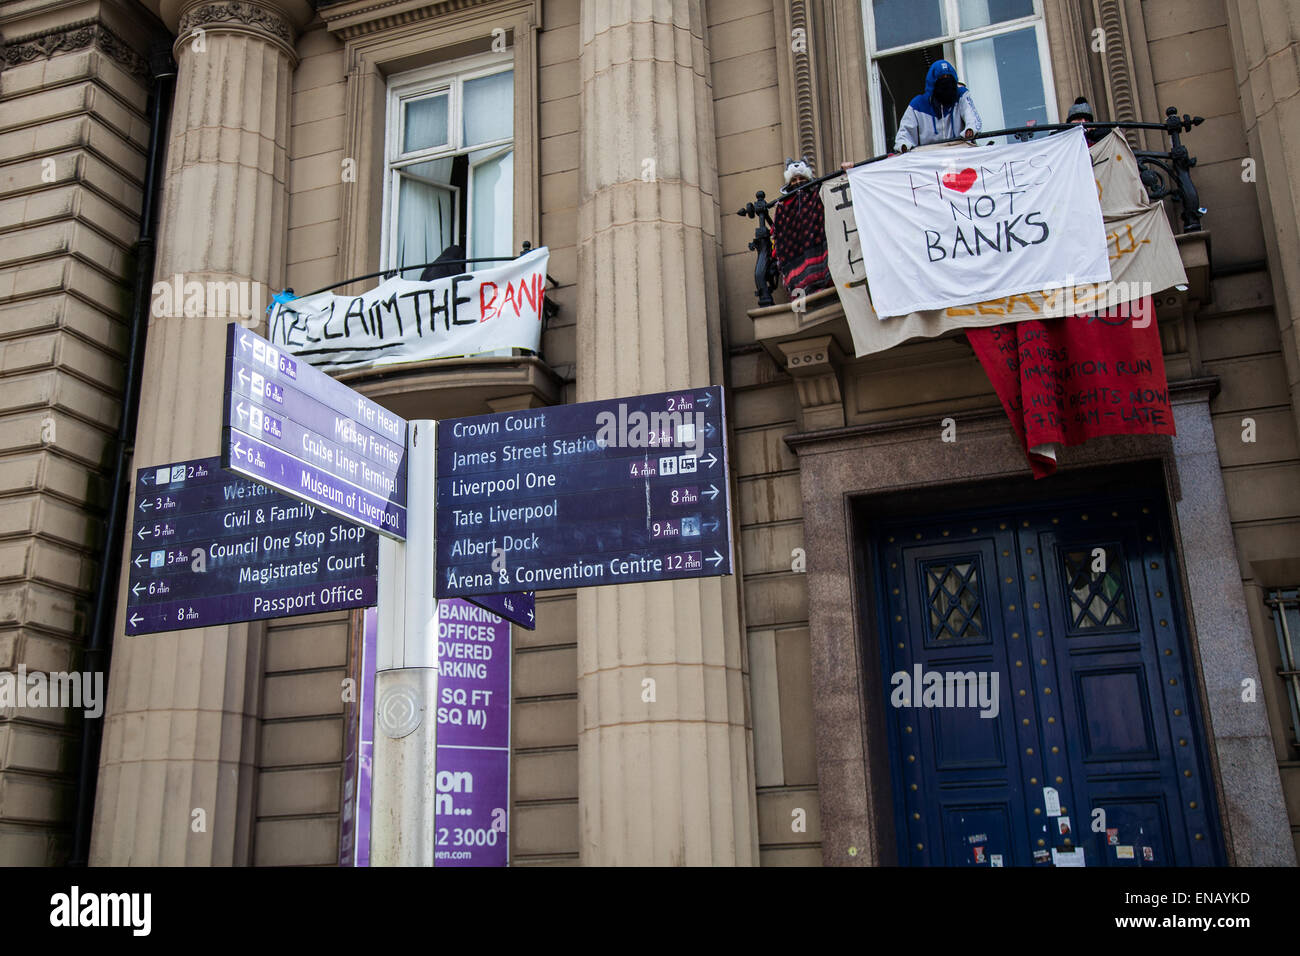 Liverpool, Merseyside, 1st May, 2015. Homeless Demonstrators occupying old Bank of England Building in Castle Street. - Stock Image